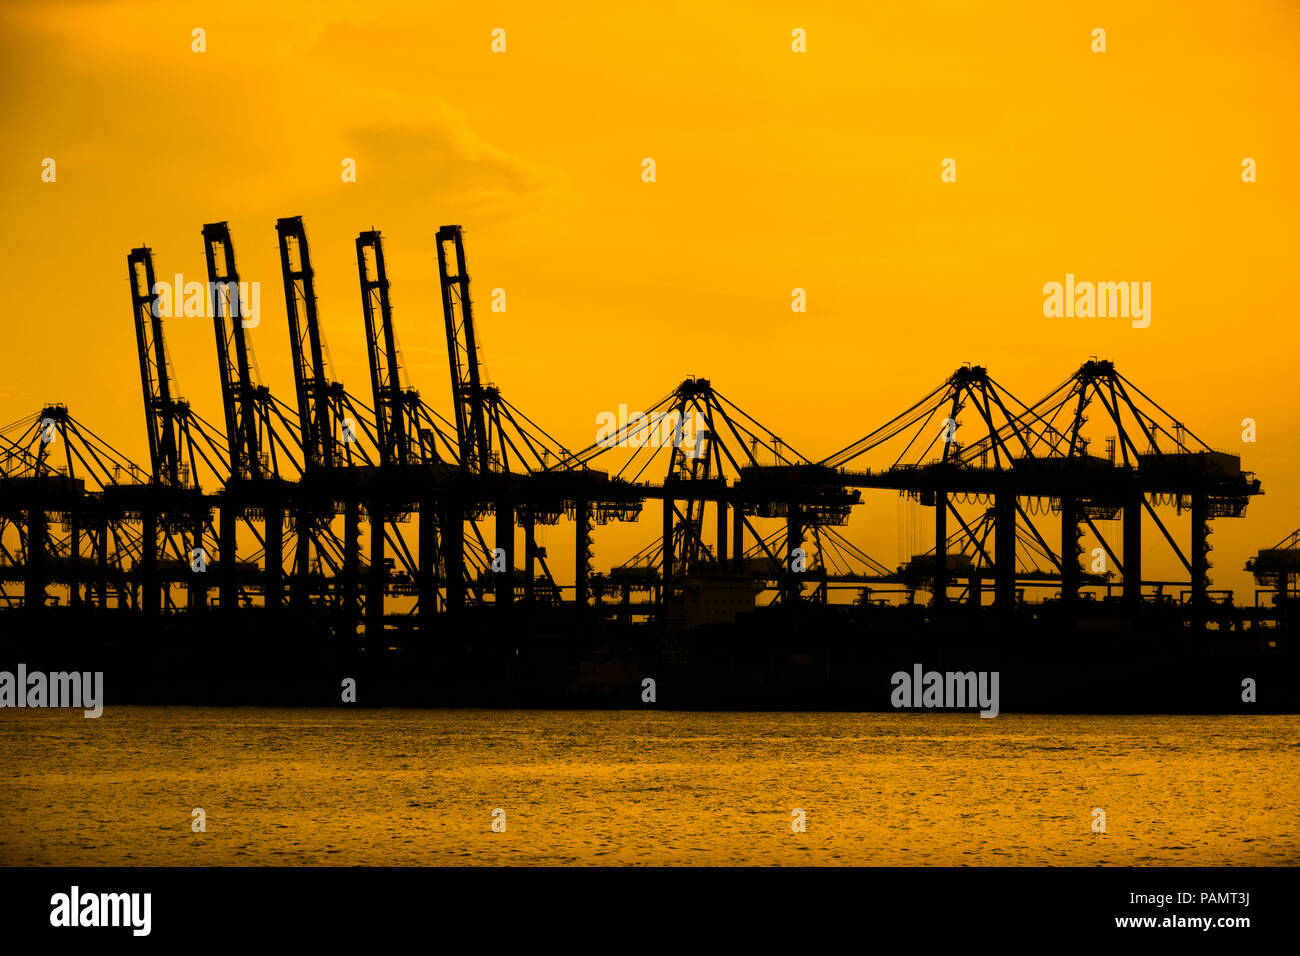 Singapore, Singapore - April 23, 2017: The mechanical cranes of Singapore's shipping port sit silhouetted during a fiery orange silhouette. - Stock Image